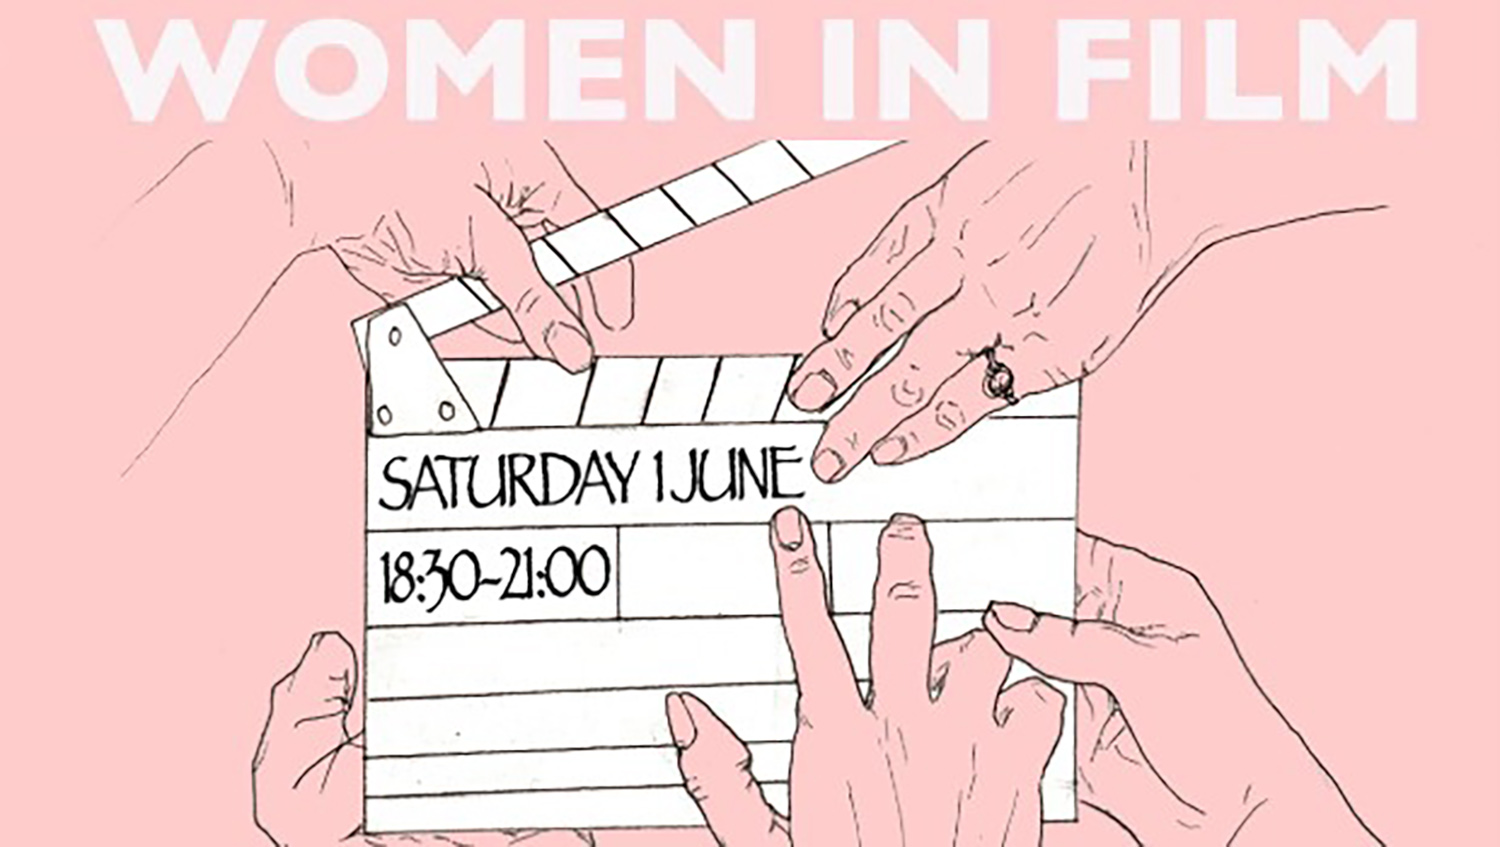 Women in Film Festival by Like Minded Females at Genesis Cinema